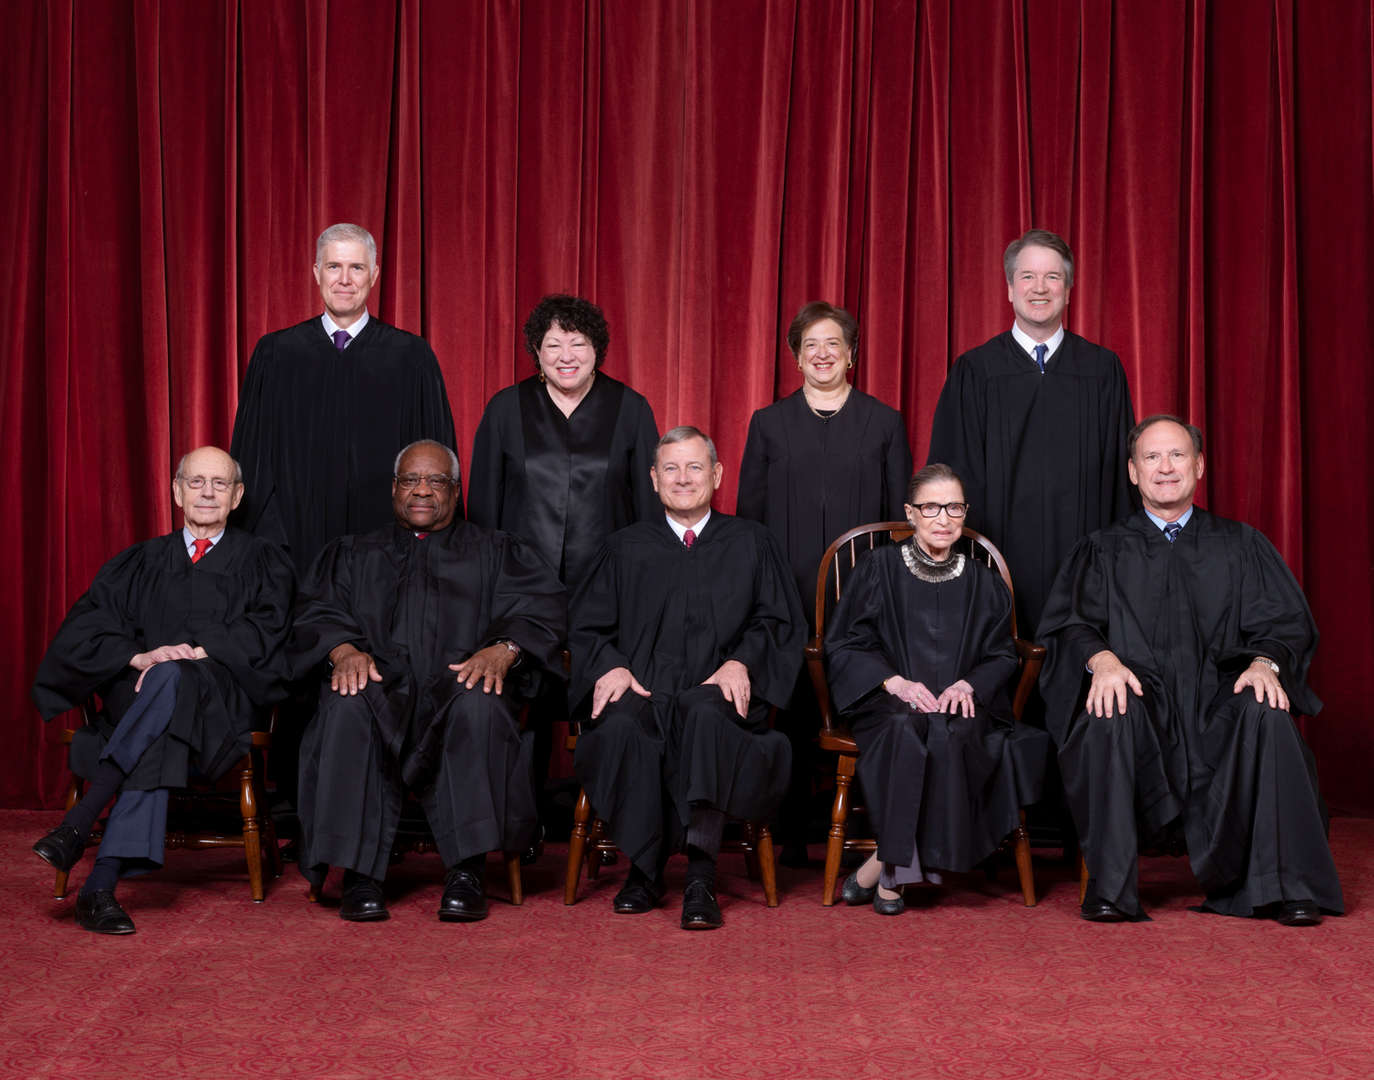 The Supreme Court at the time Ginsberg died